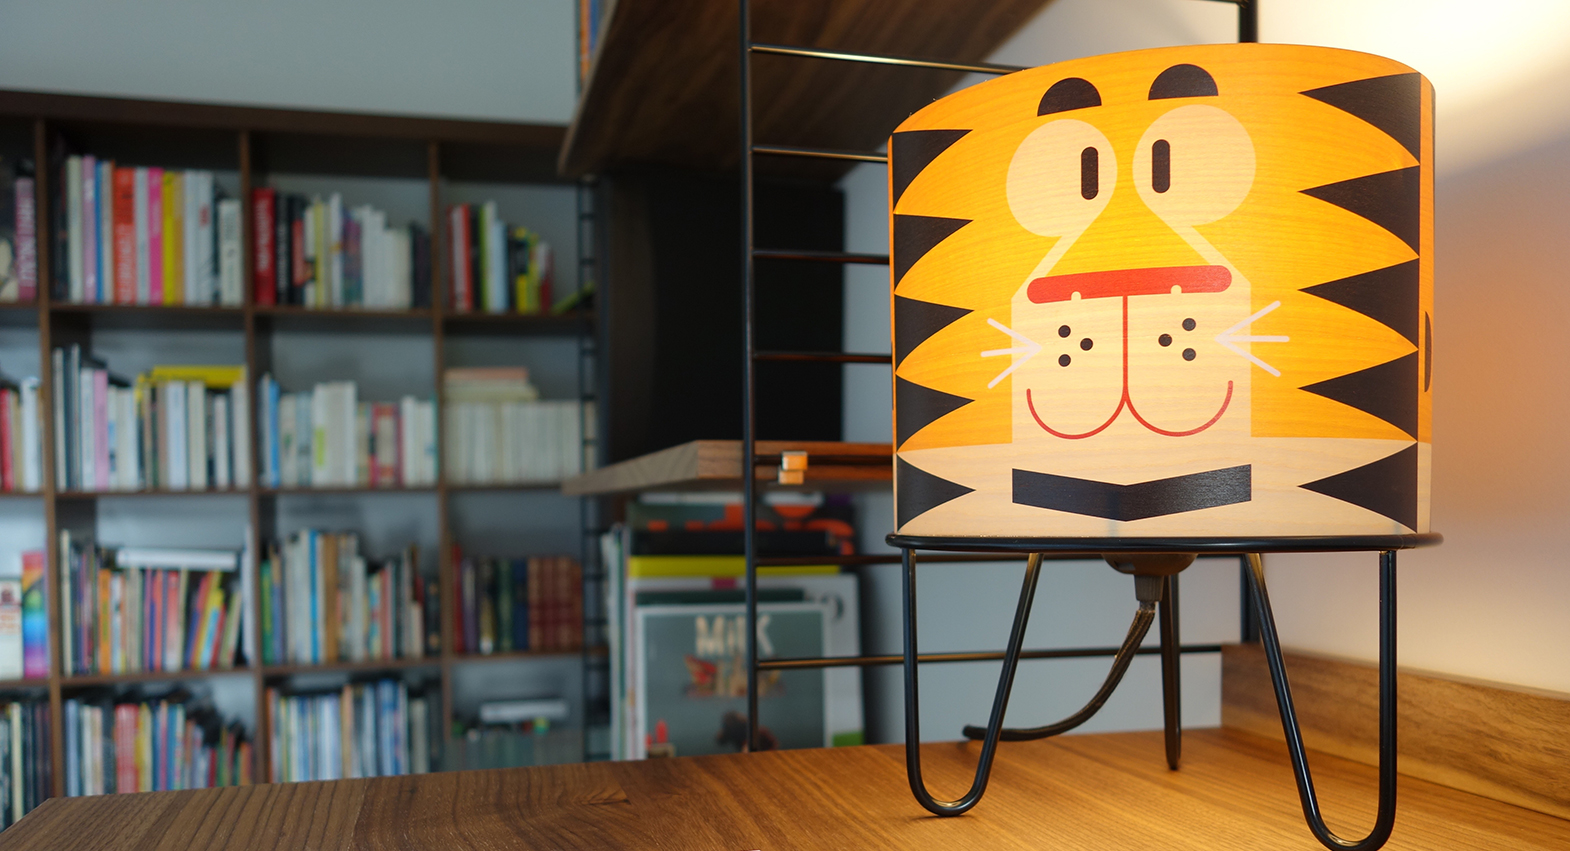 Minilum bedside lamp for nursery or kids room by E-Glue Design